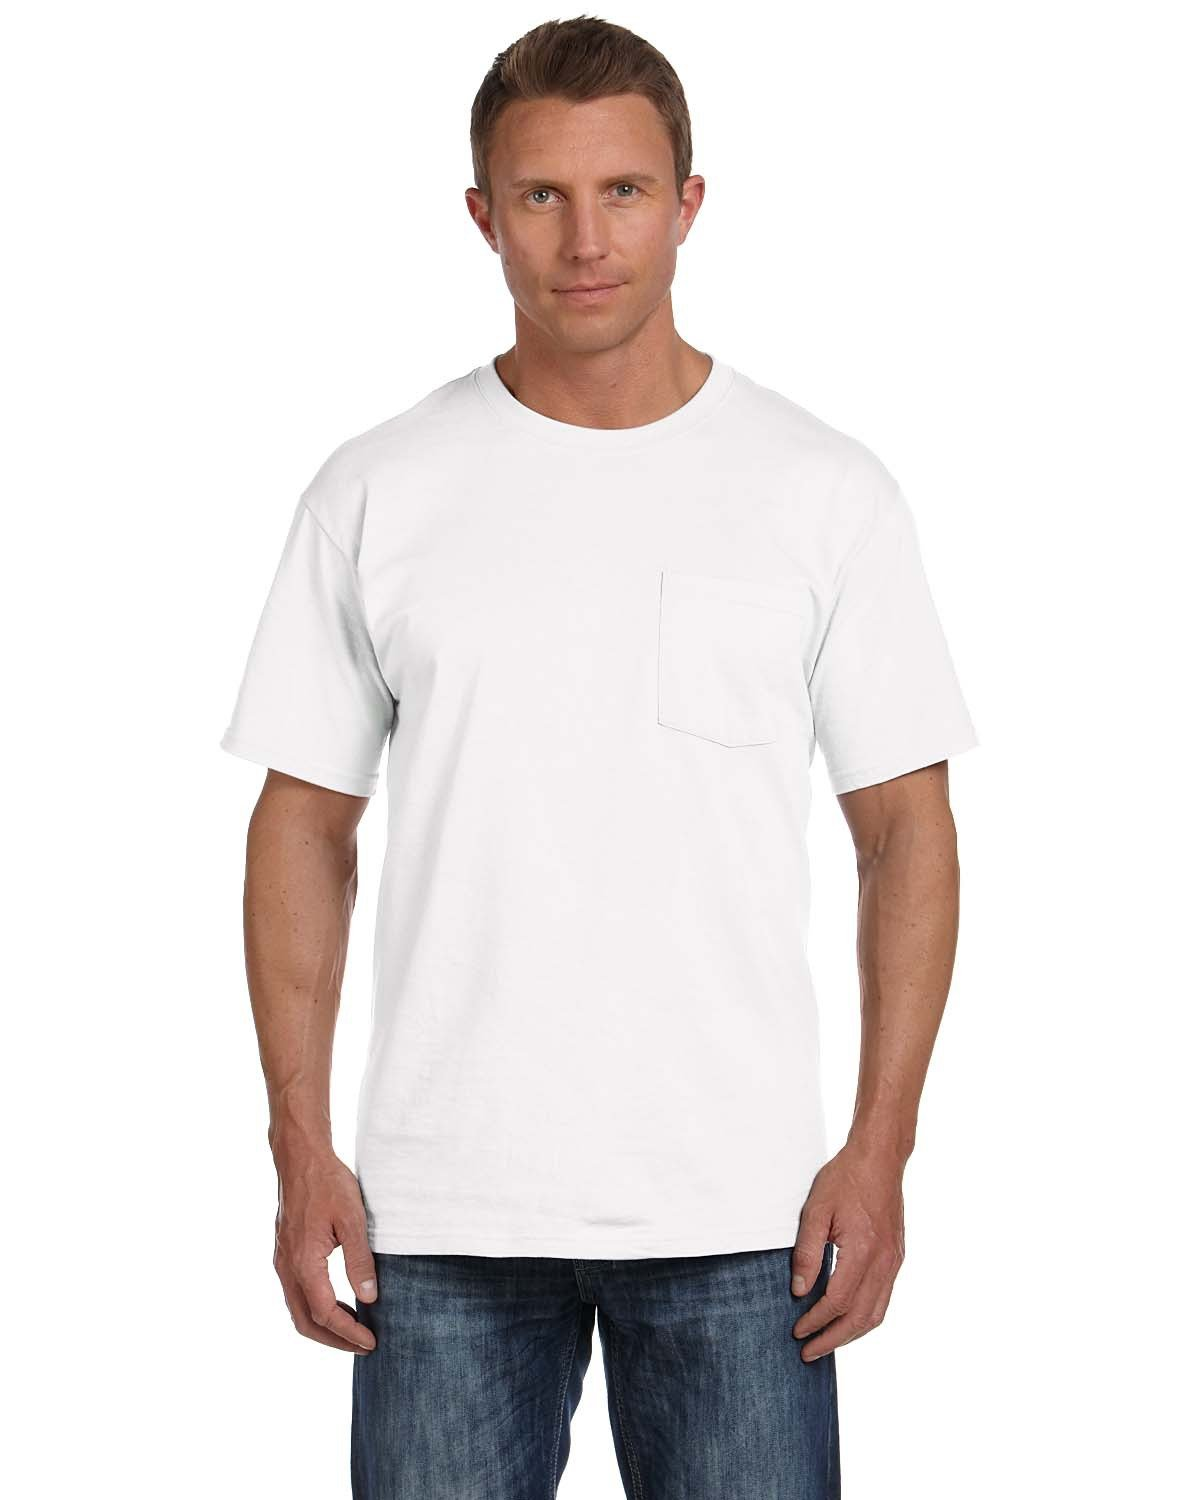 Fruit of the Loom Adult HD Cotton™ Pocket T-Shirt WHITE